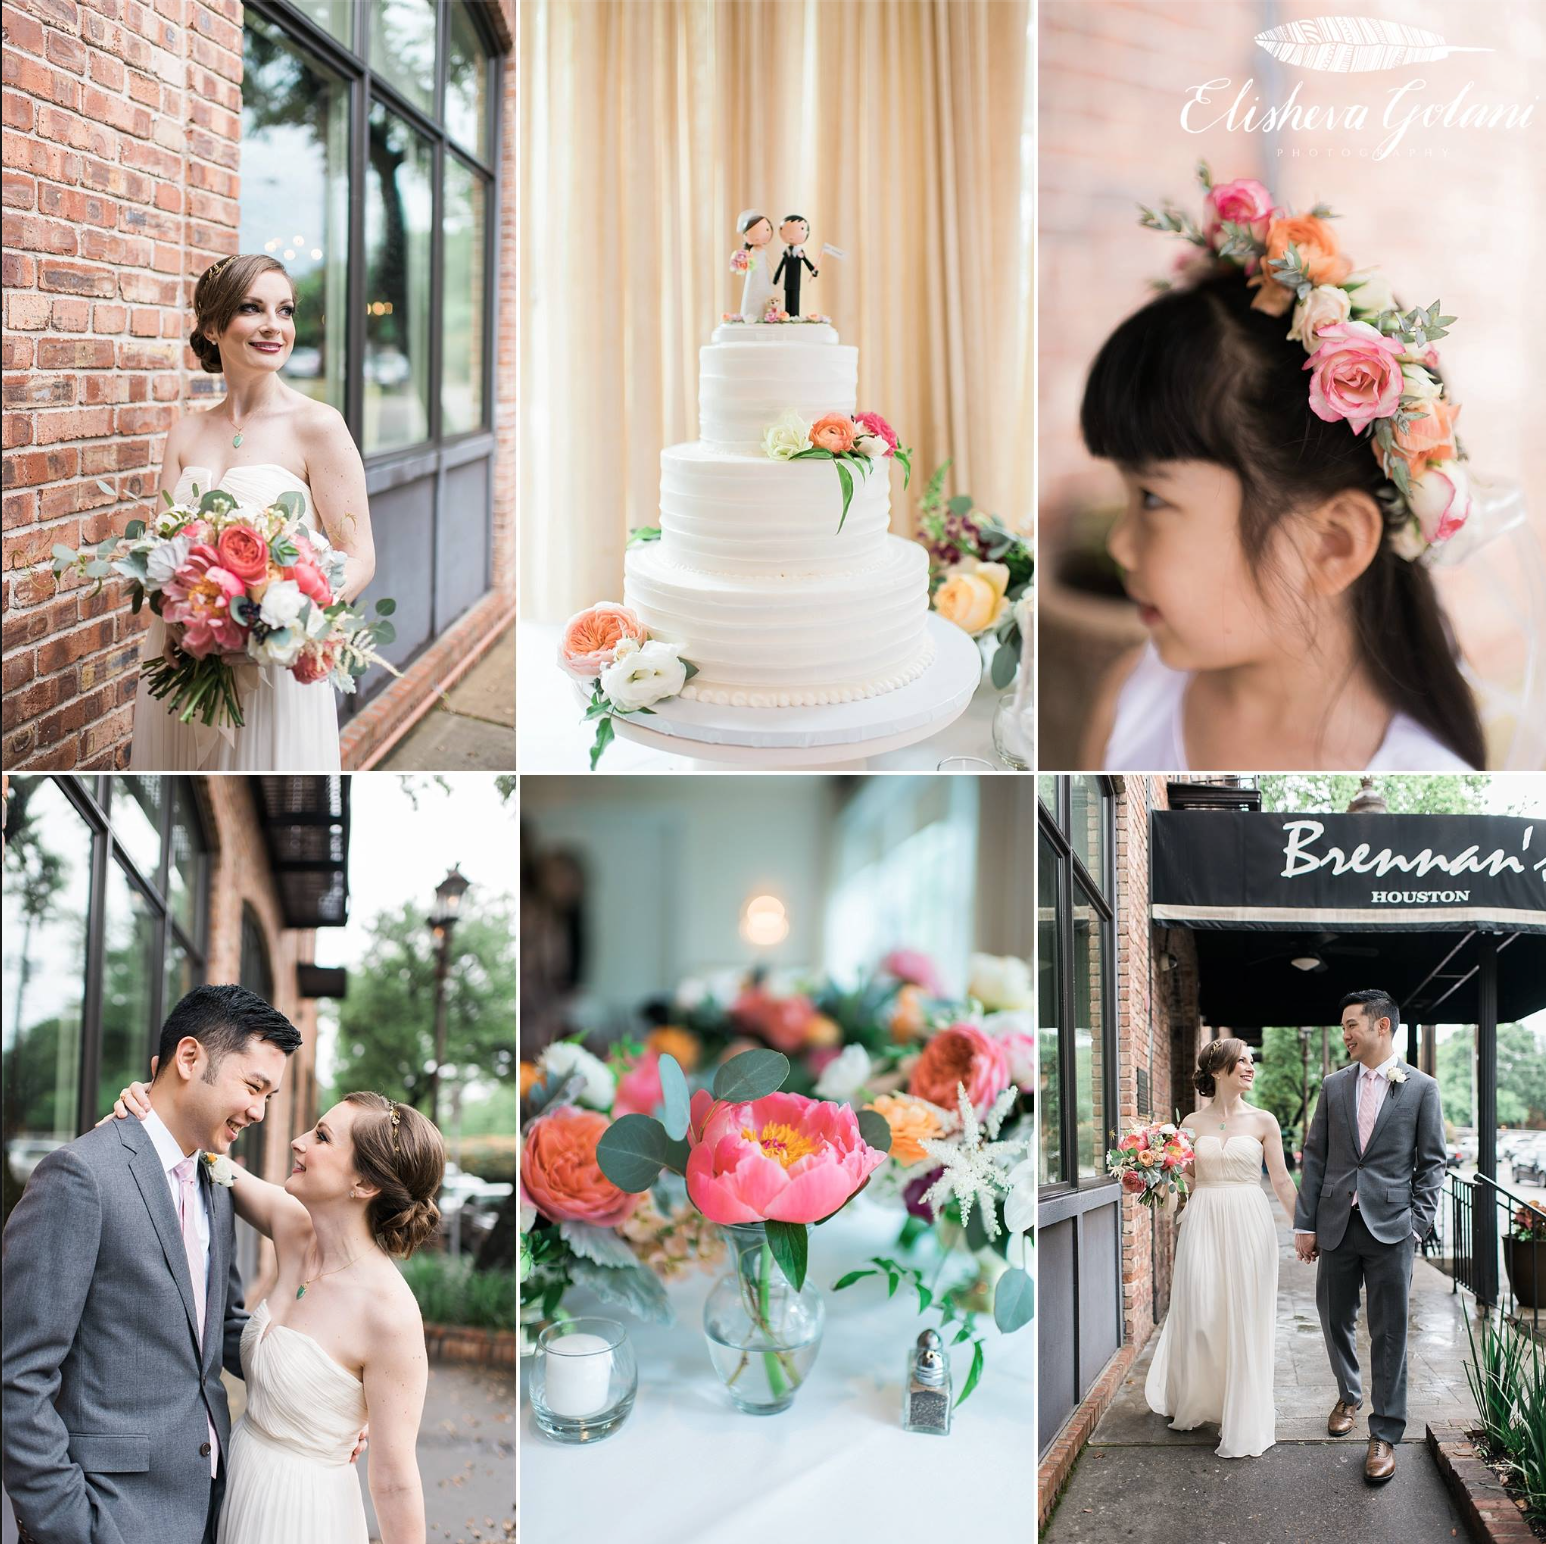 Elisheva Golani Photography; Maxit Flower Design styling and flowers